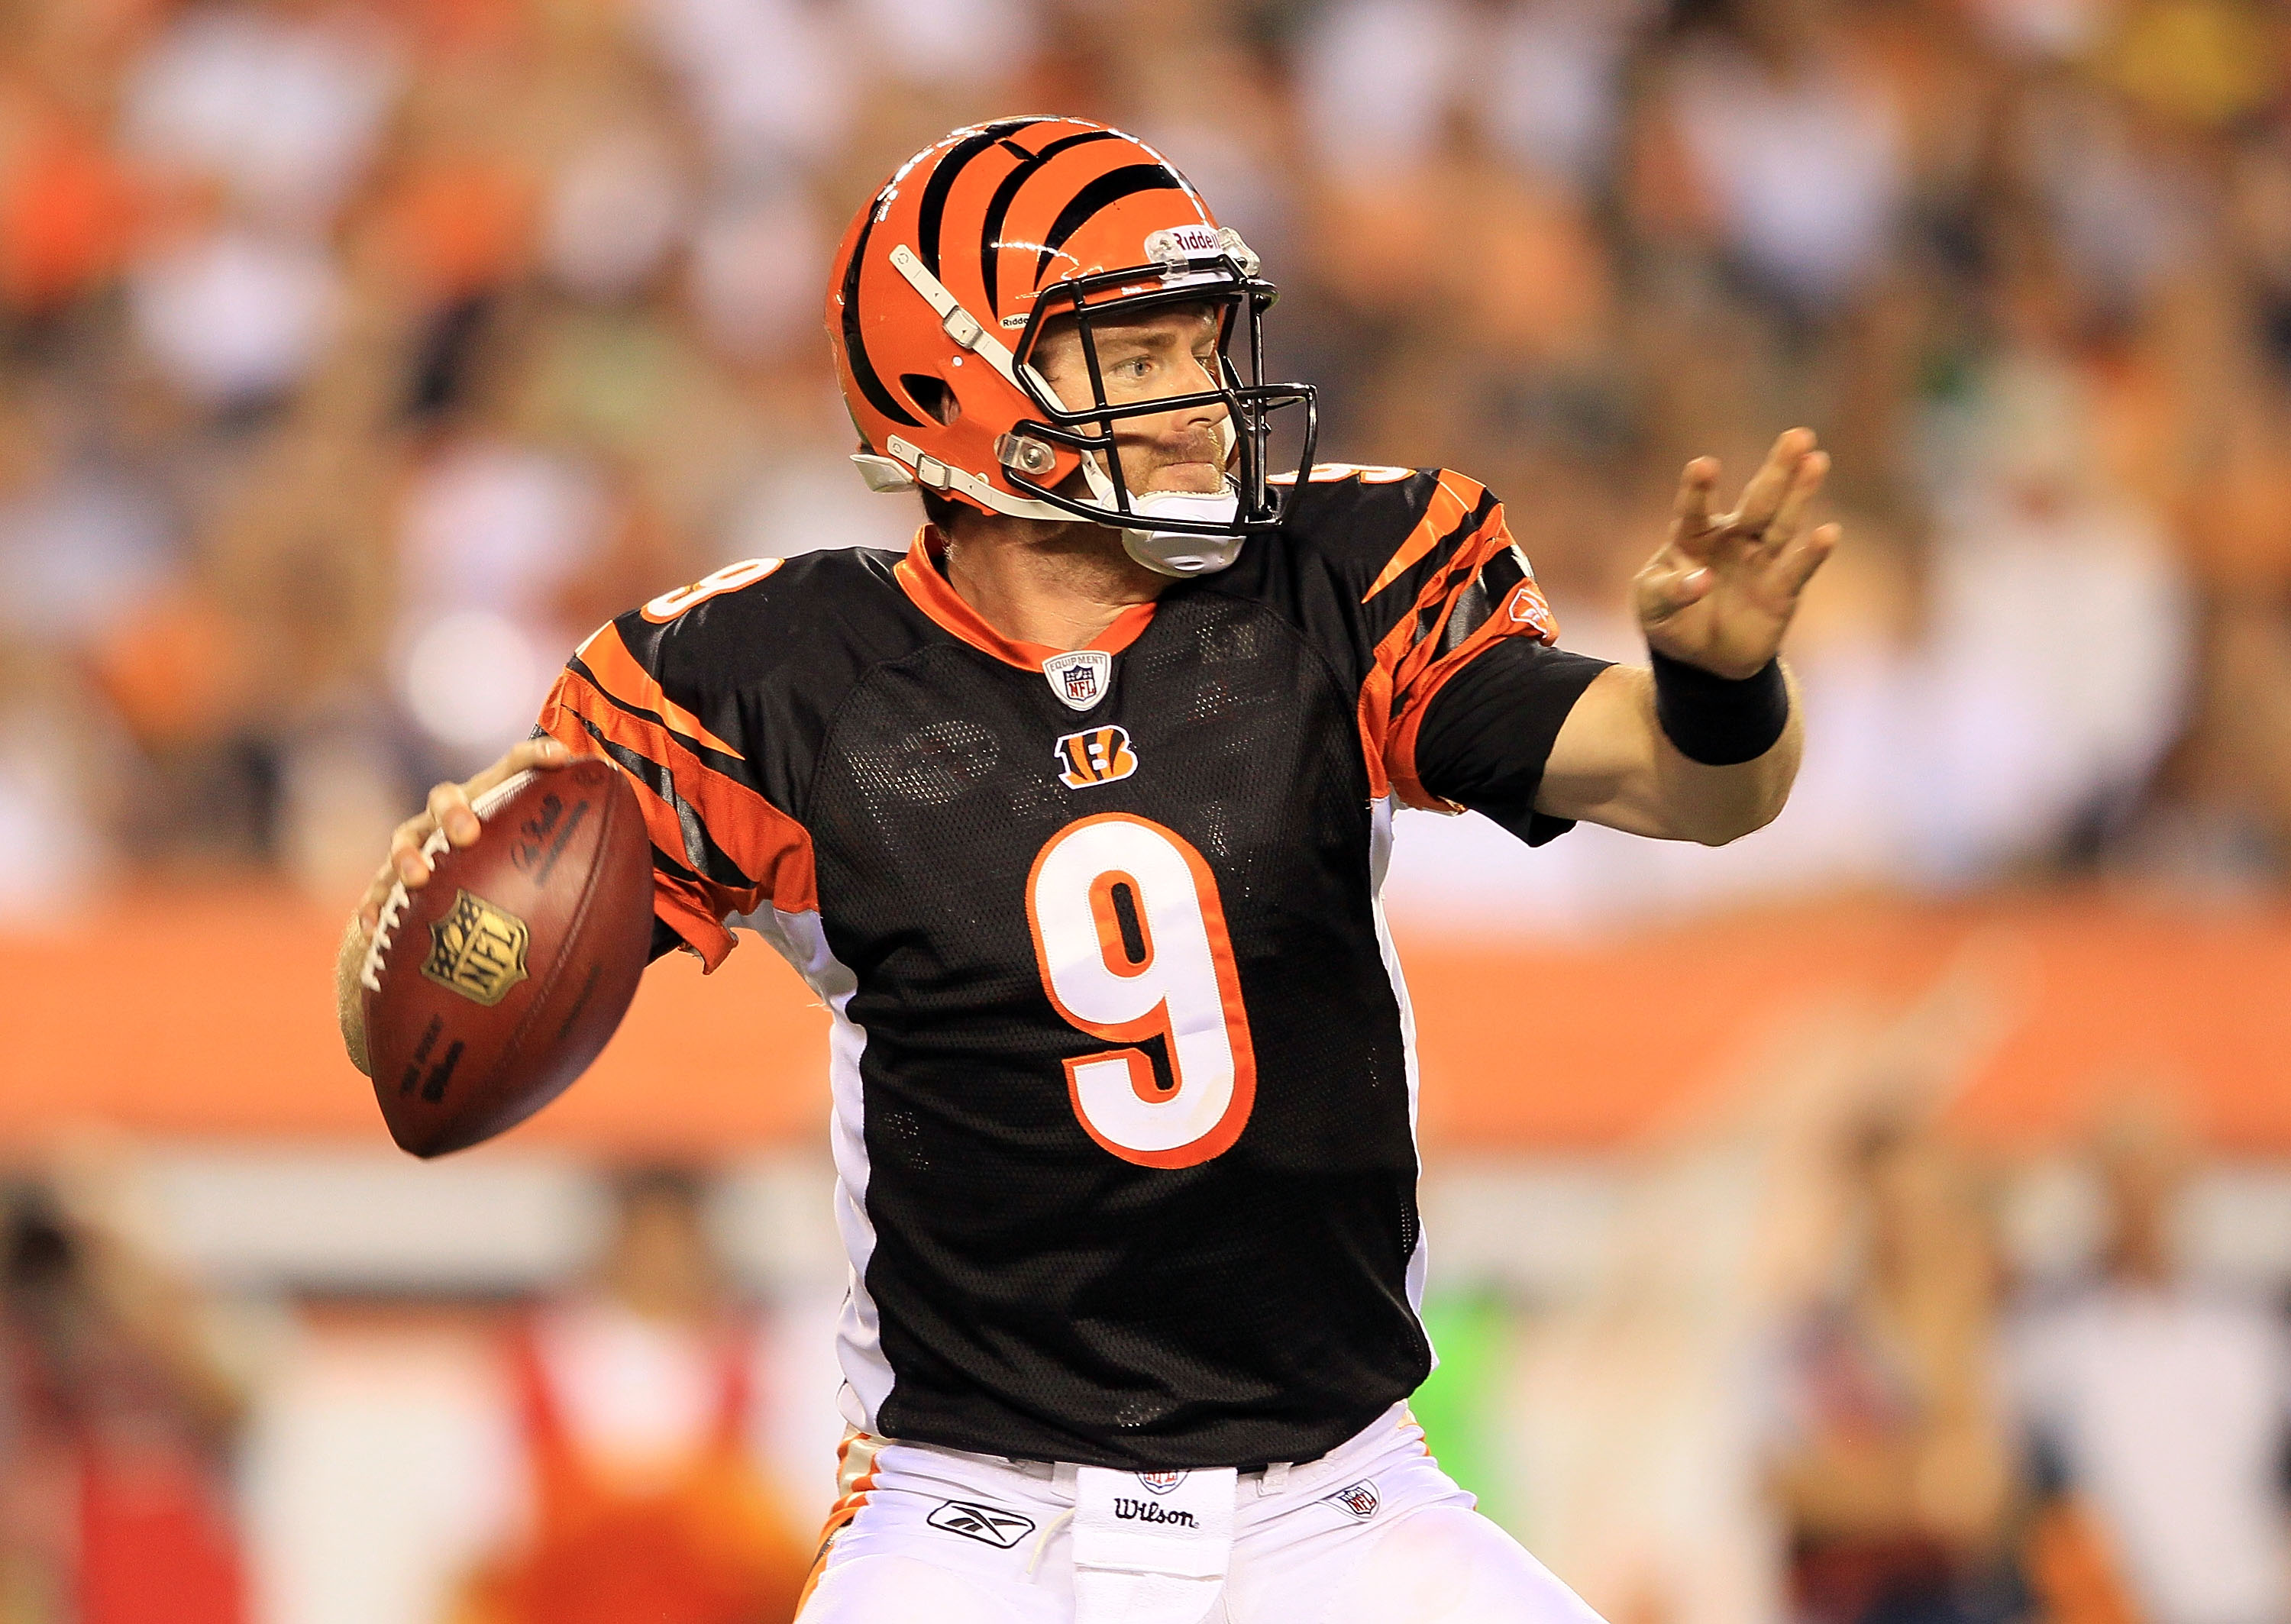 CINCINNATI - AUGUST 20:  Carson Palmer #9 of the Cincinnati Bengals throws a pass during the NFL preseason game against the Philadelphia Eagles at Paul Brown Stadium on August 20, 2010 in Cincinnati, Ohio.  (Photo by Andy Lyons/Getty Images)